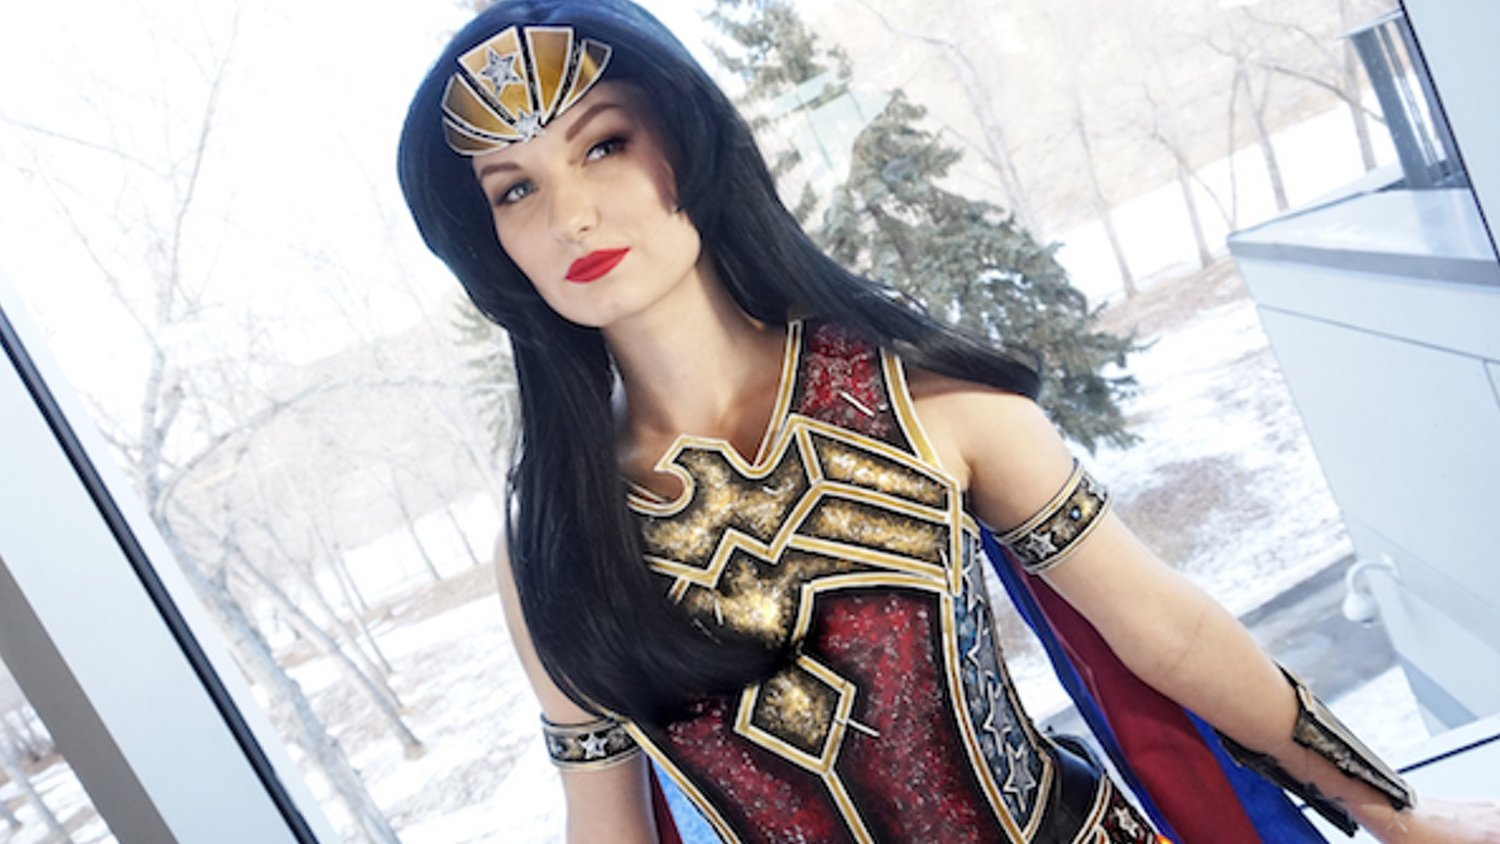 This Wonder Woman Cosplay Is Very Unique and Beautiful